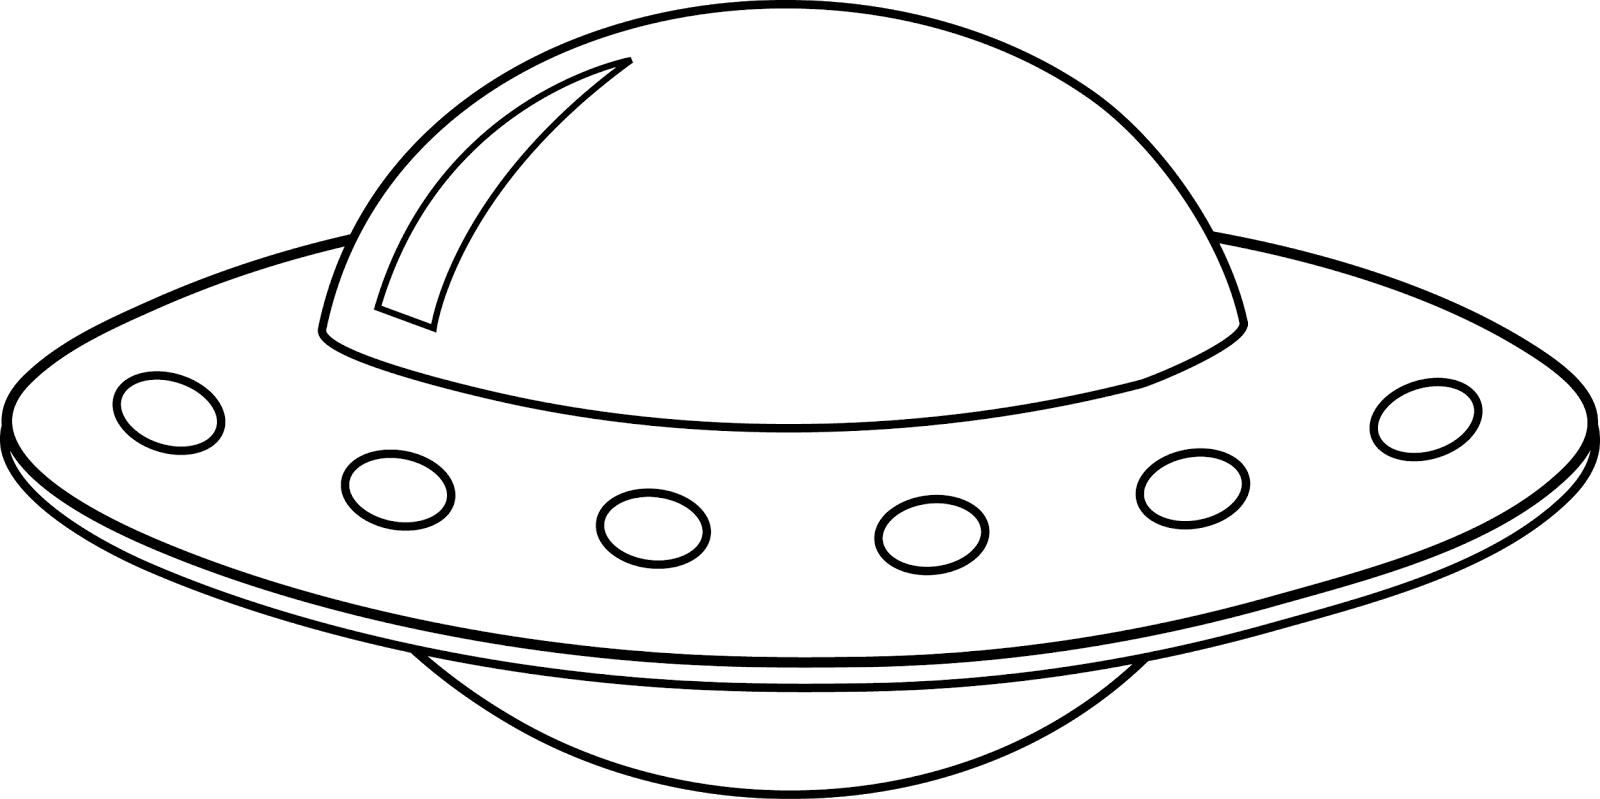 The Flying Saucer Ufo Food Truck